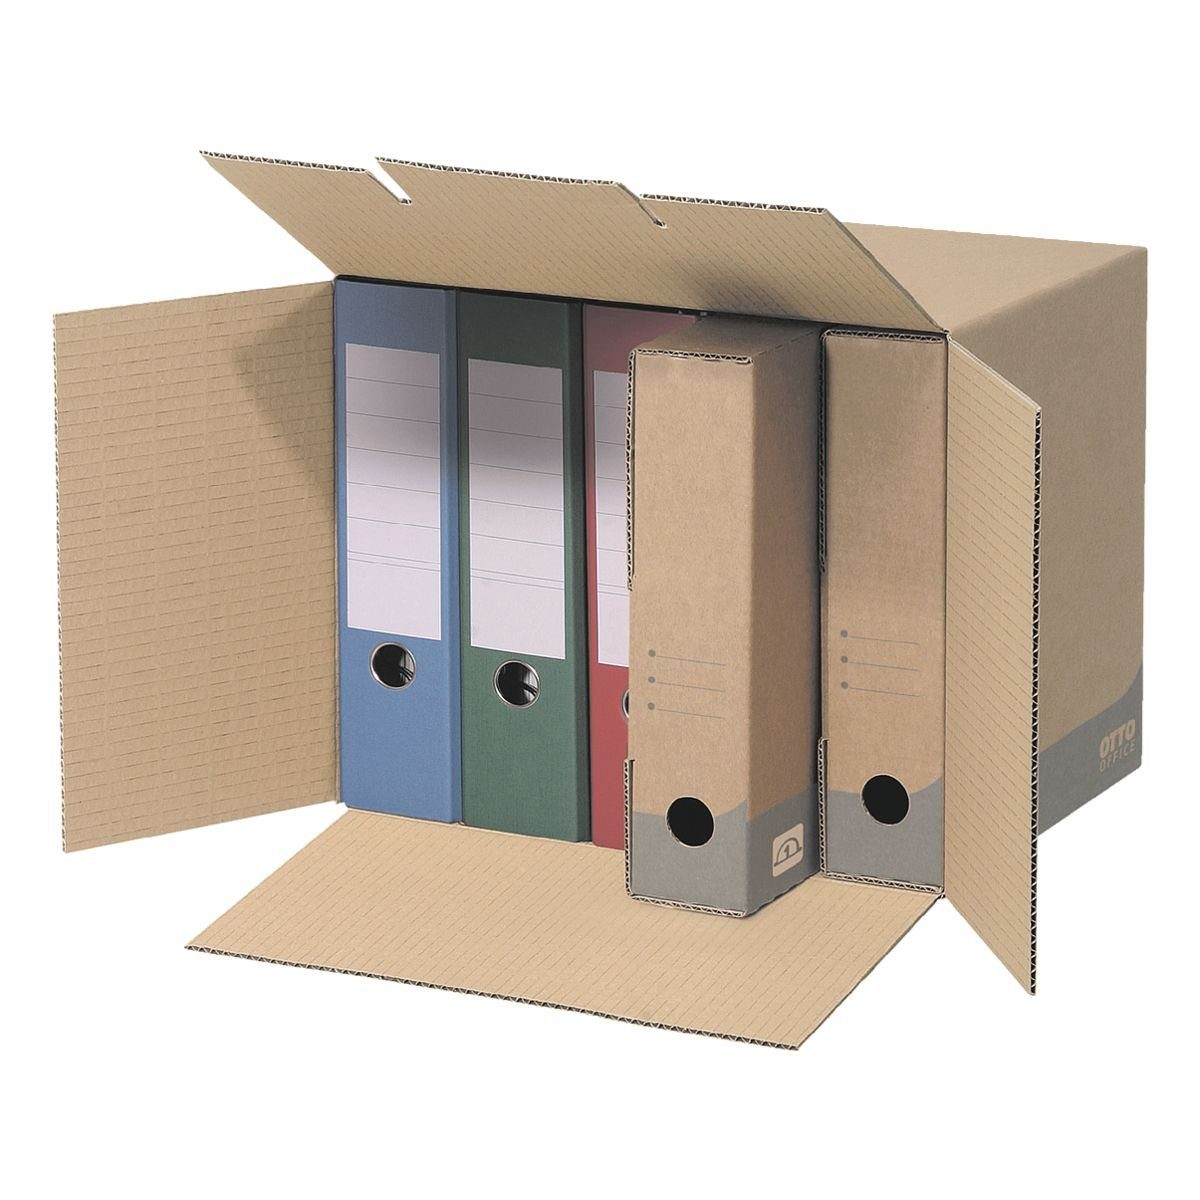 OTTO Office Budget 10er-Pack Ablage-Container